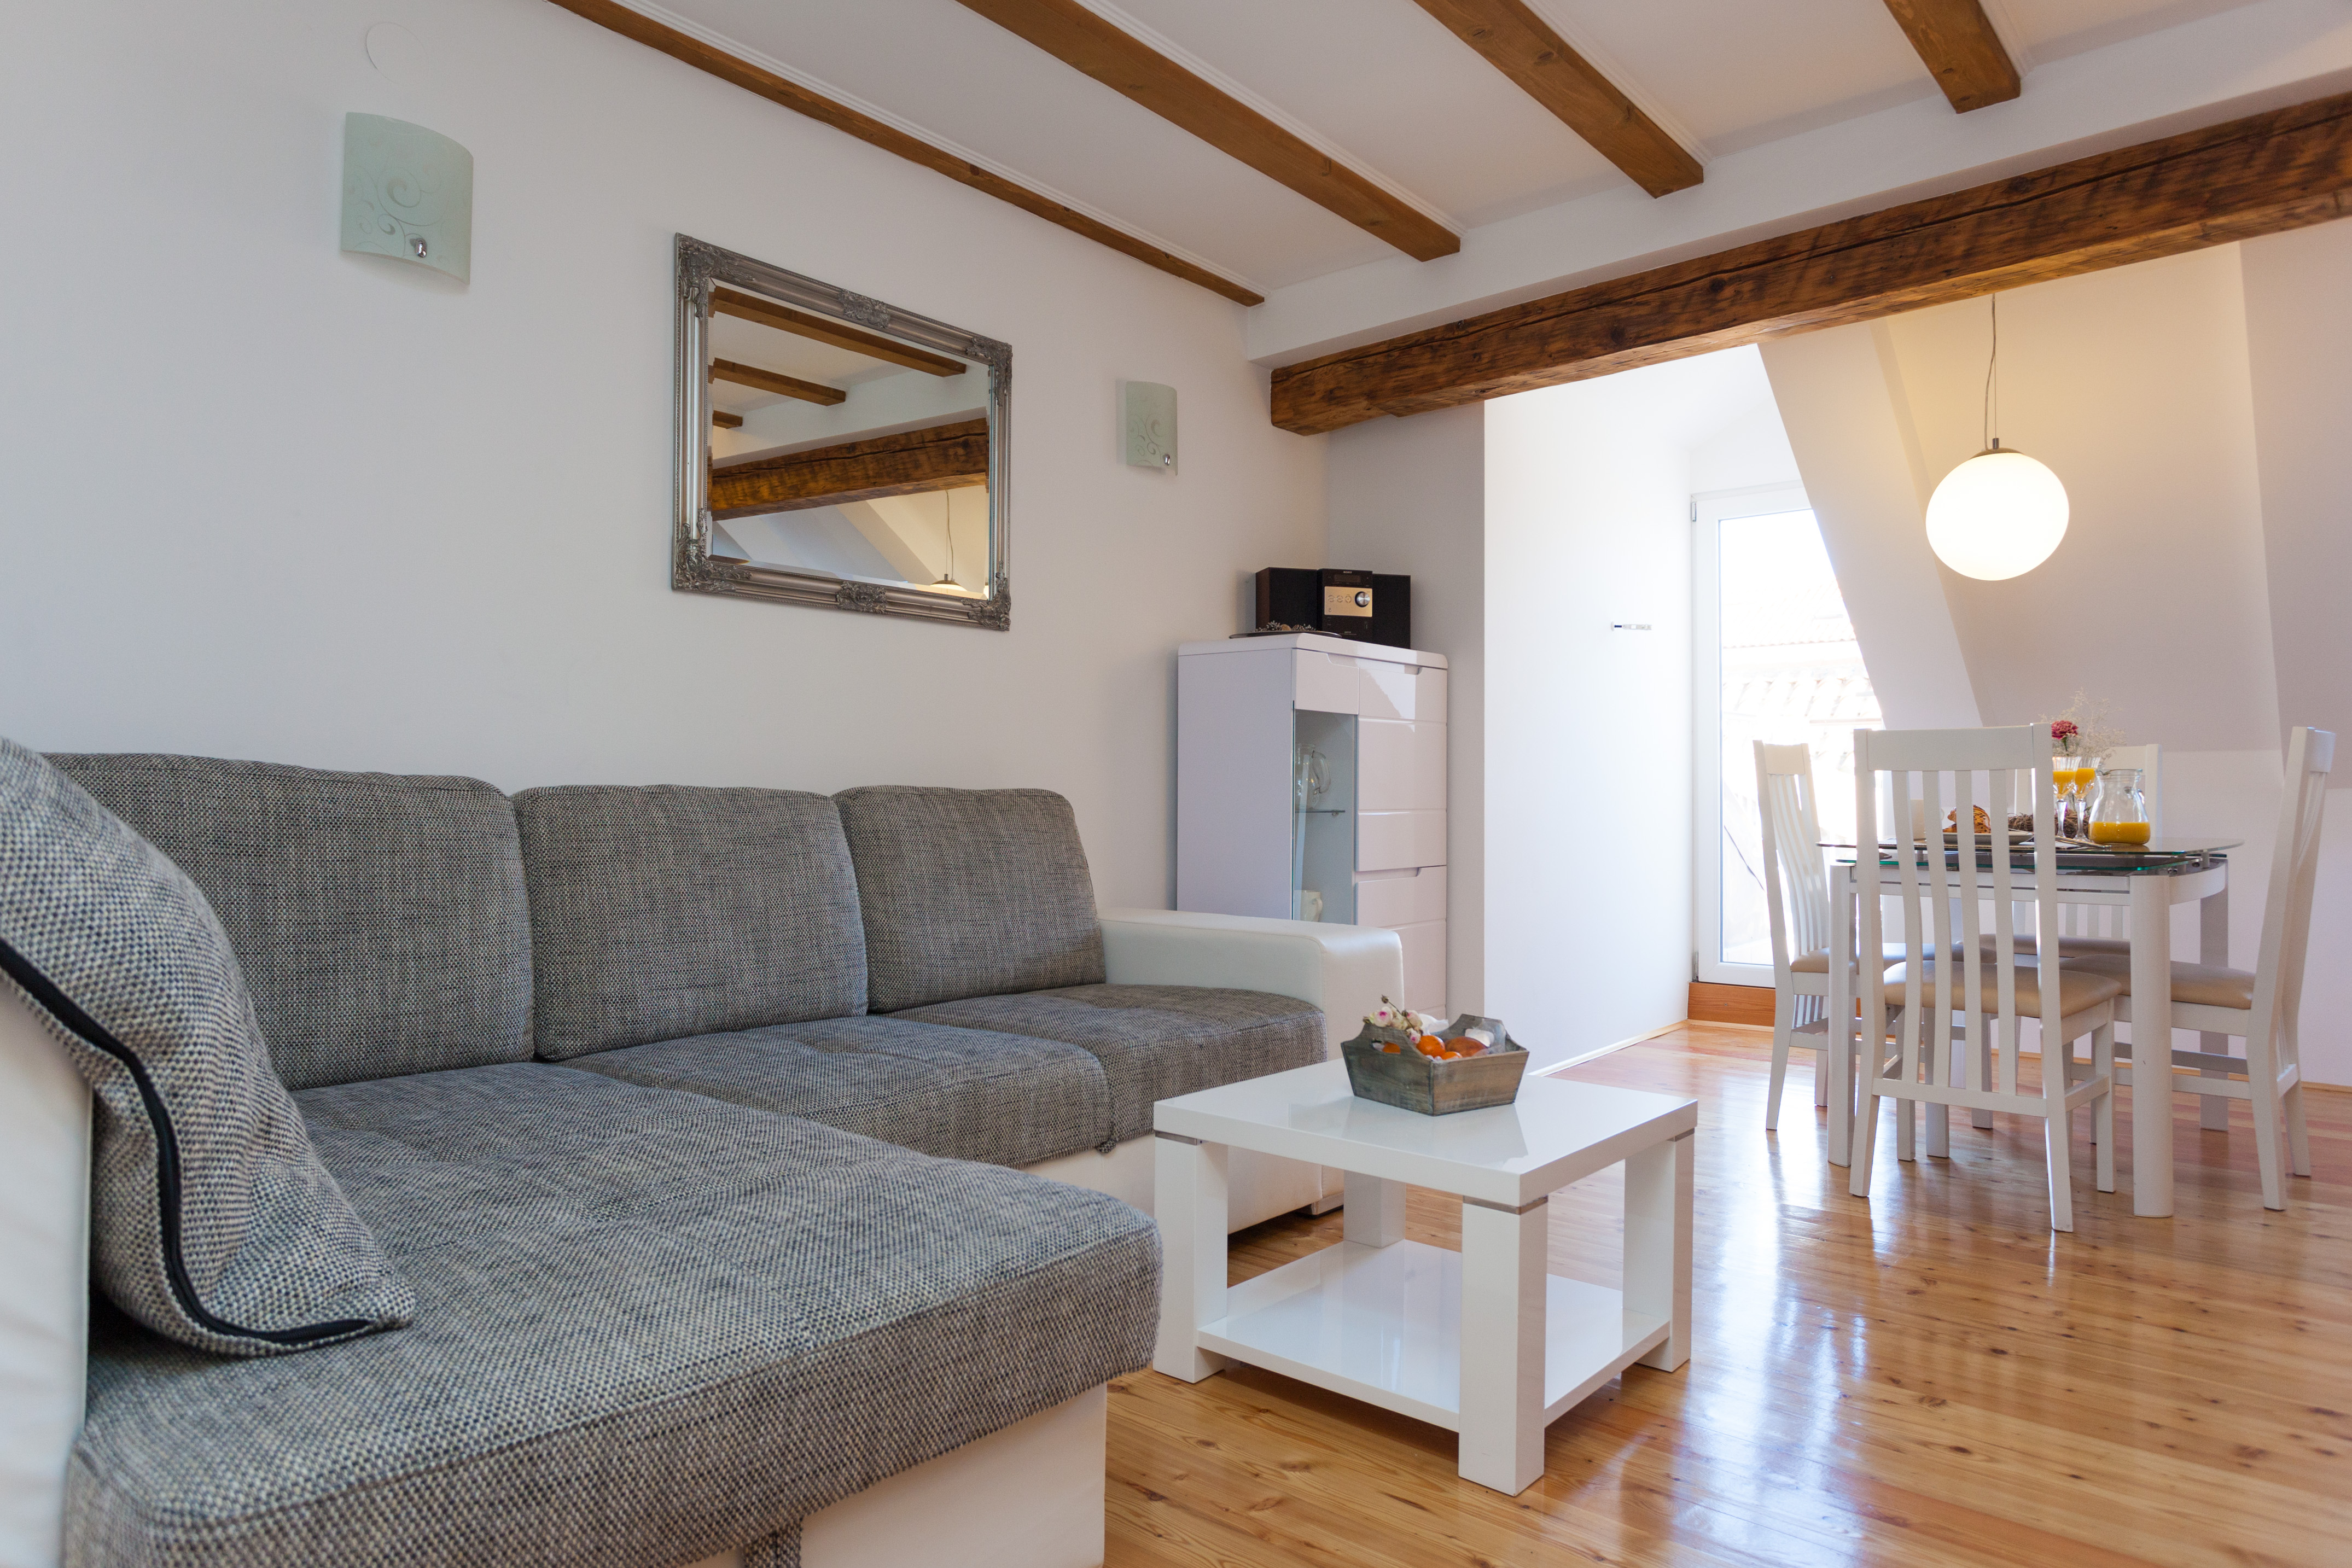 <p>Sleeps 2 (+2)<br />1 bedroom<br />1 bathroom<br />living room with double sofa bed<br />1 small balcony<br />Center of Old Town</p>